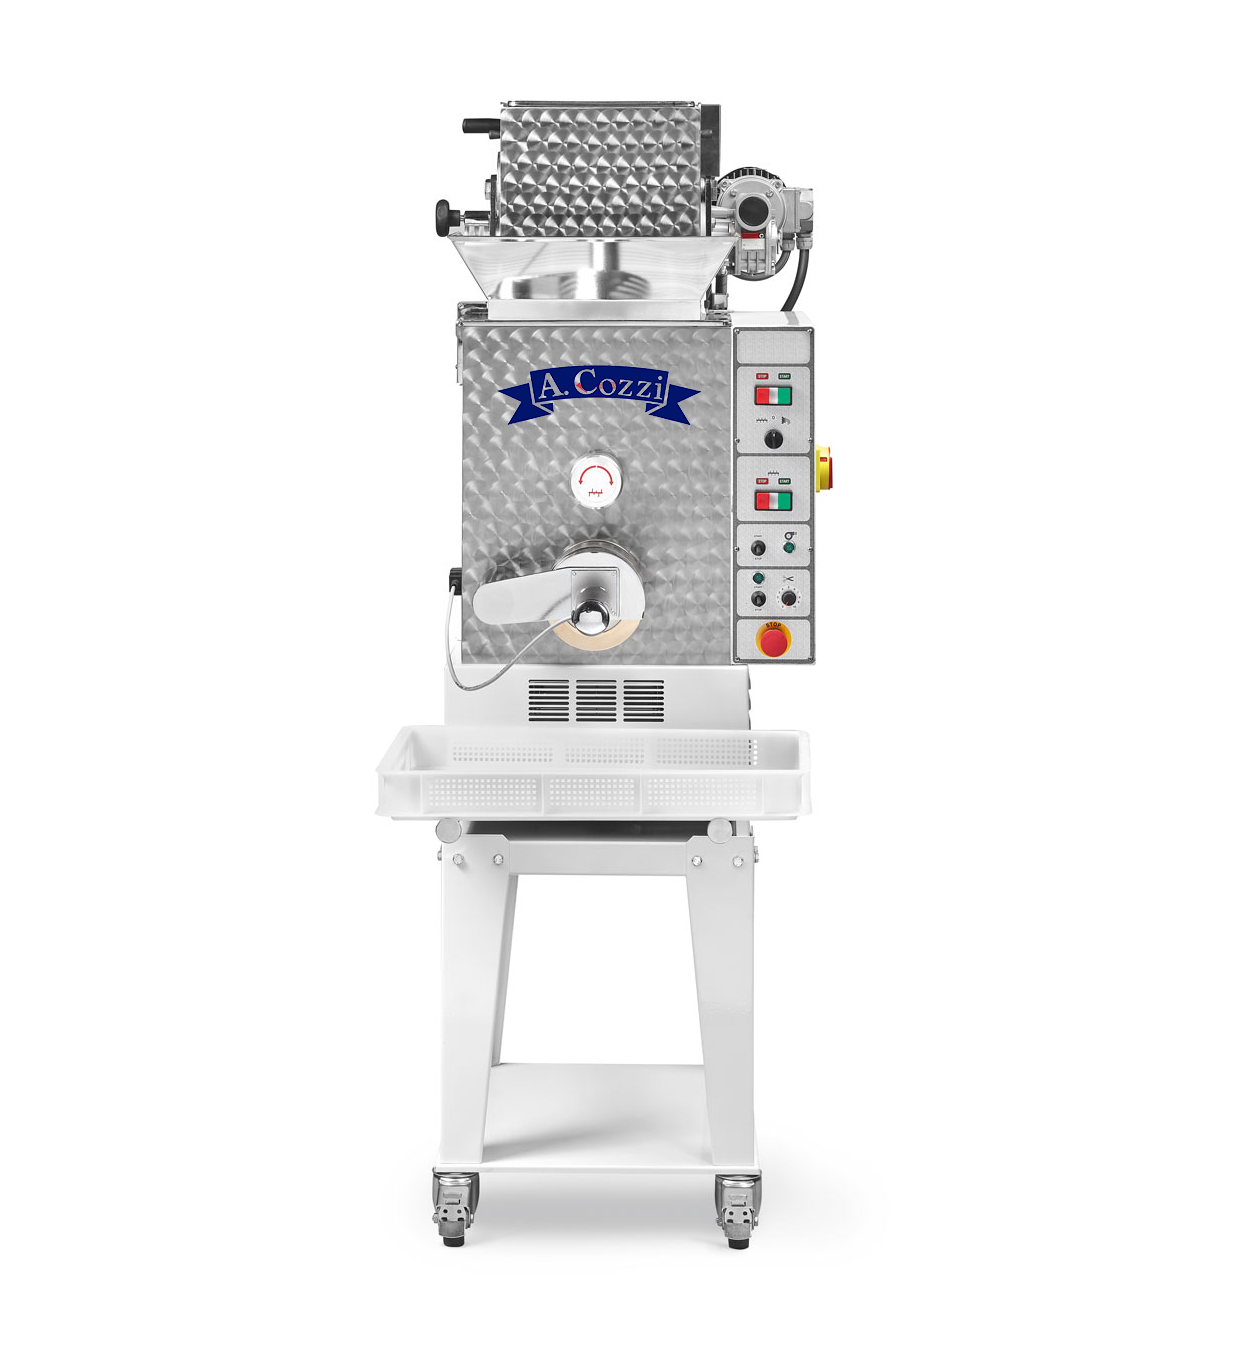 Press for fresh pasta double tub model PC 110